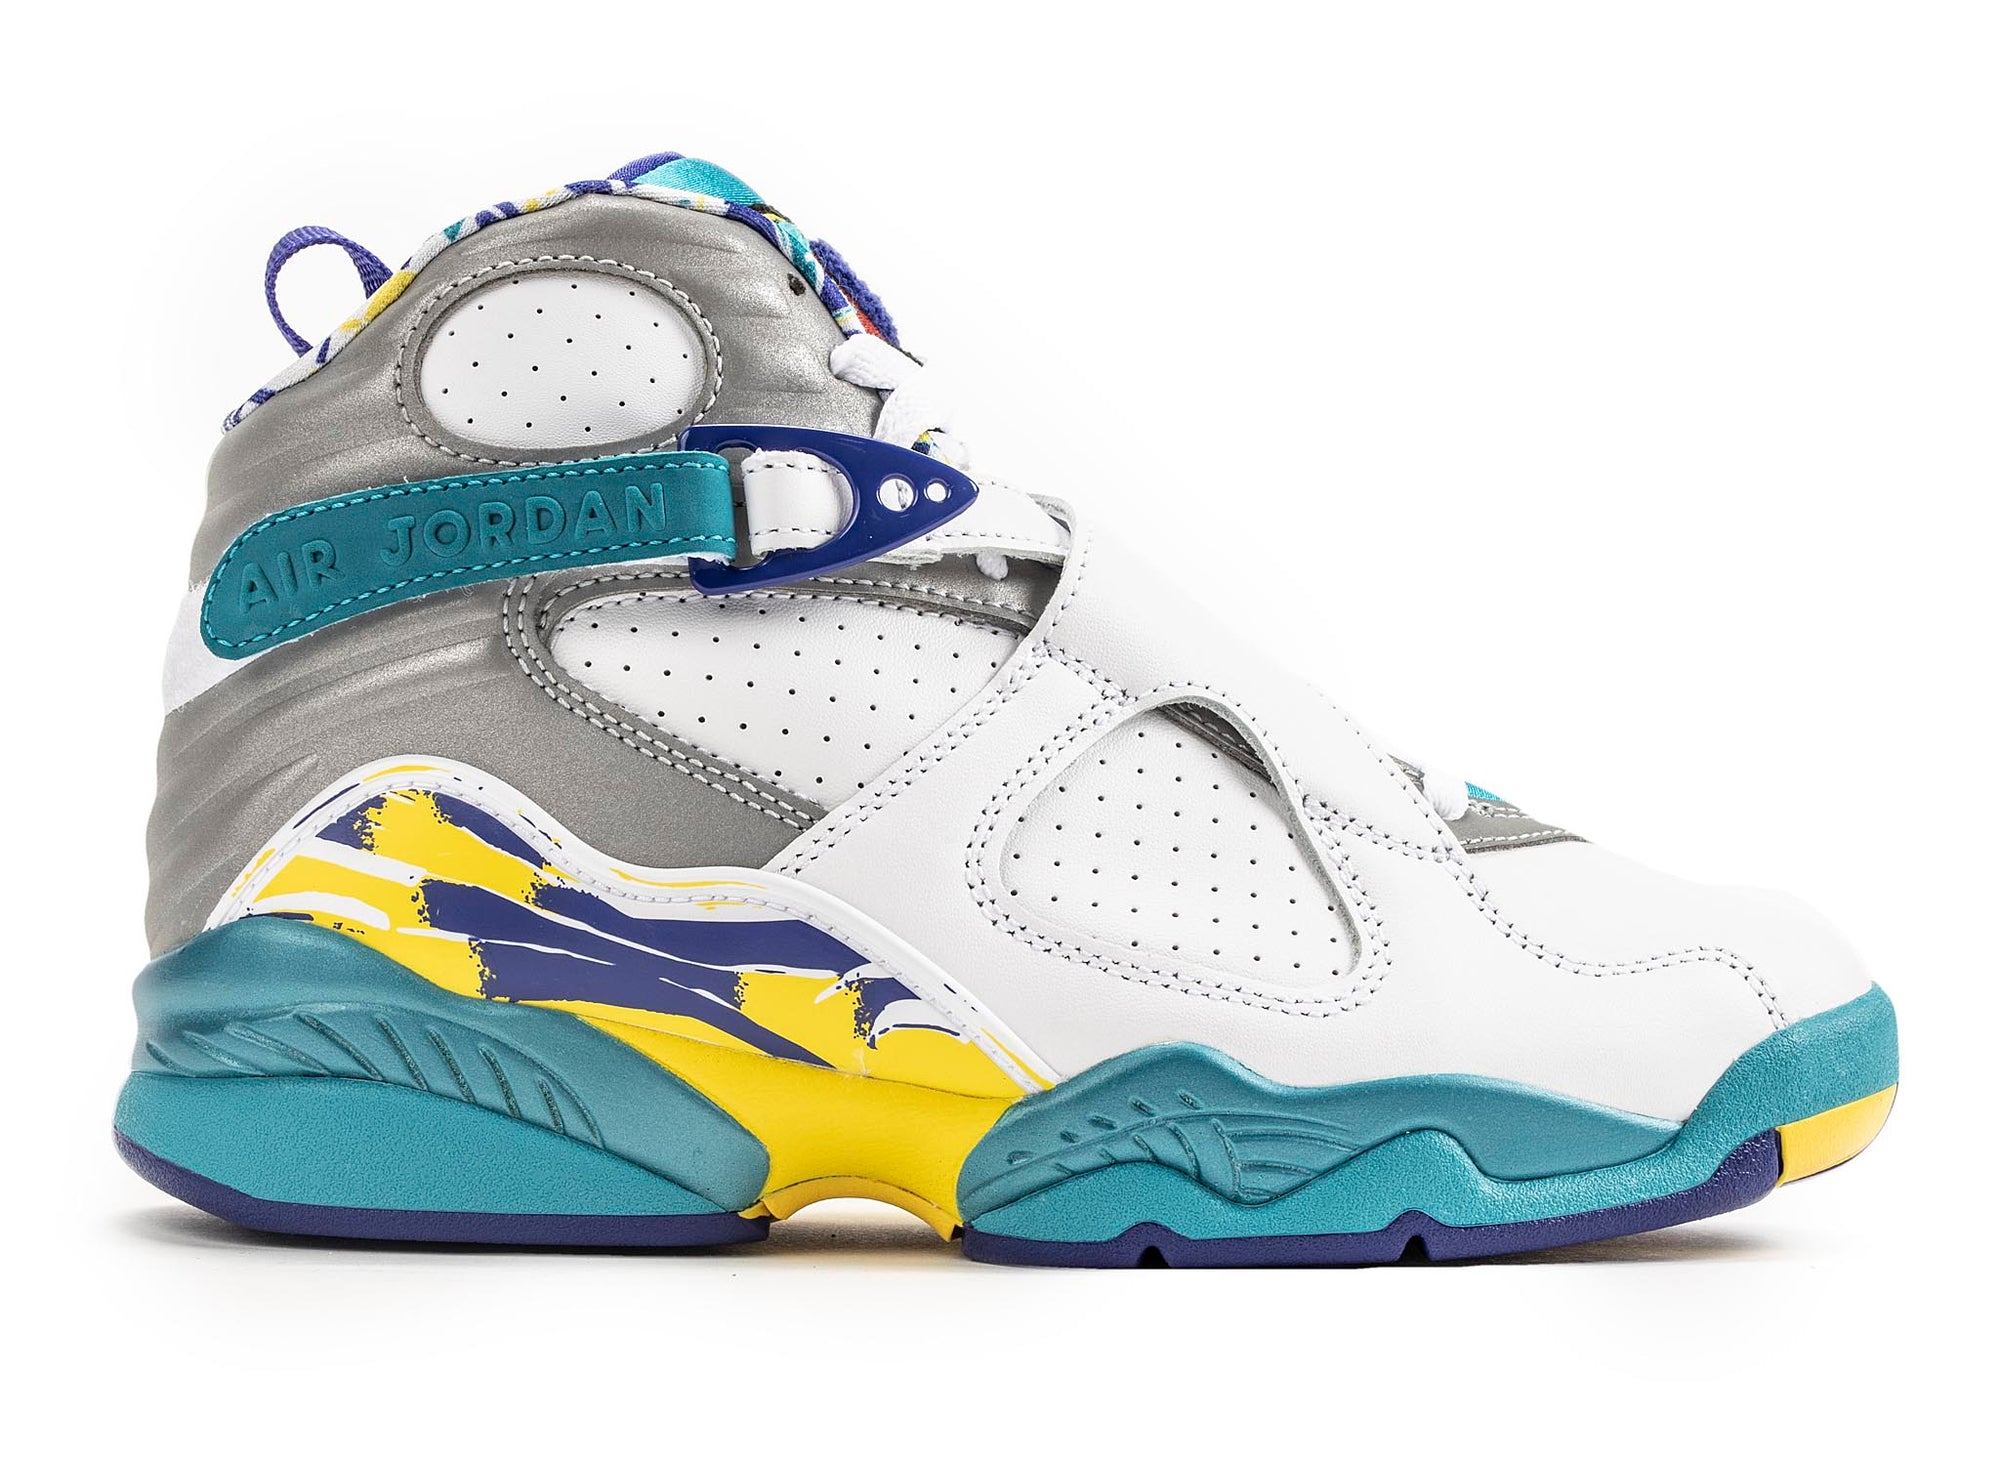 nouveau style c05e0 0e0d3 Women's Air Jordan 8 Retro 'White Aqua' - Oneness Boutique